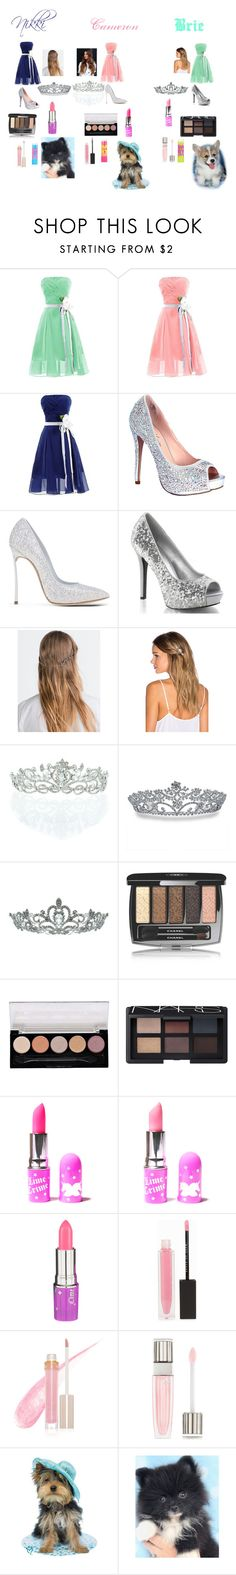 """""""Wwe divas power"""" by girlbye1234 ❤ liked on Polyvore featuring Lauren Lorraine, Casadei, Zara, Lelet NY, Kate Marie, Bling Jewelry, Chanel, NARS Cosmetics, Lime Crime and MAKE UP STORE"""